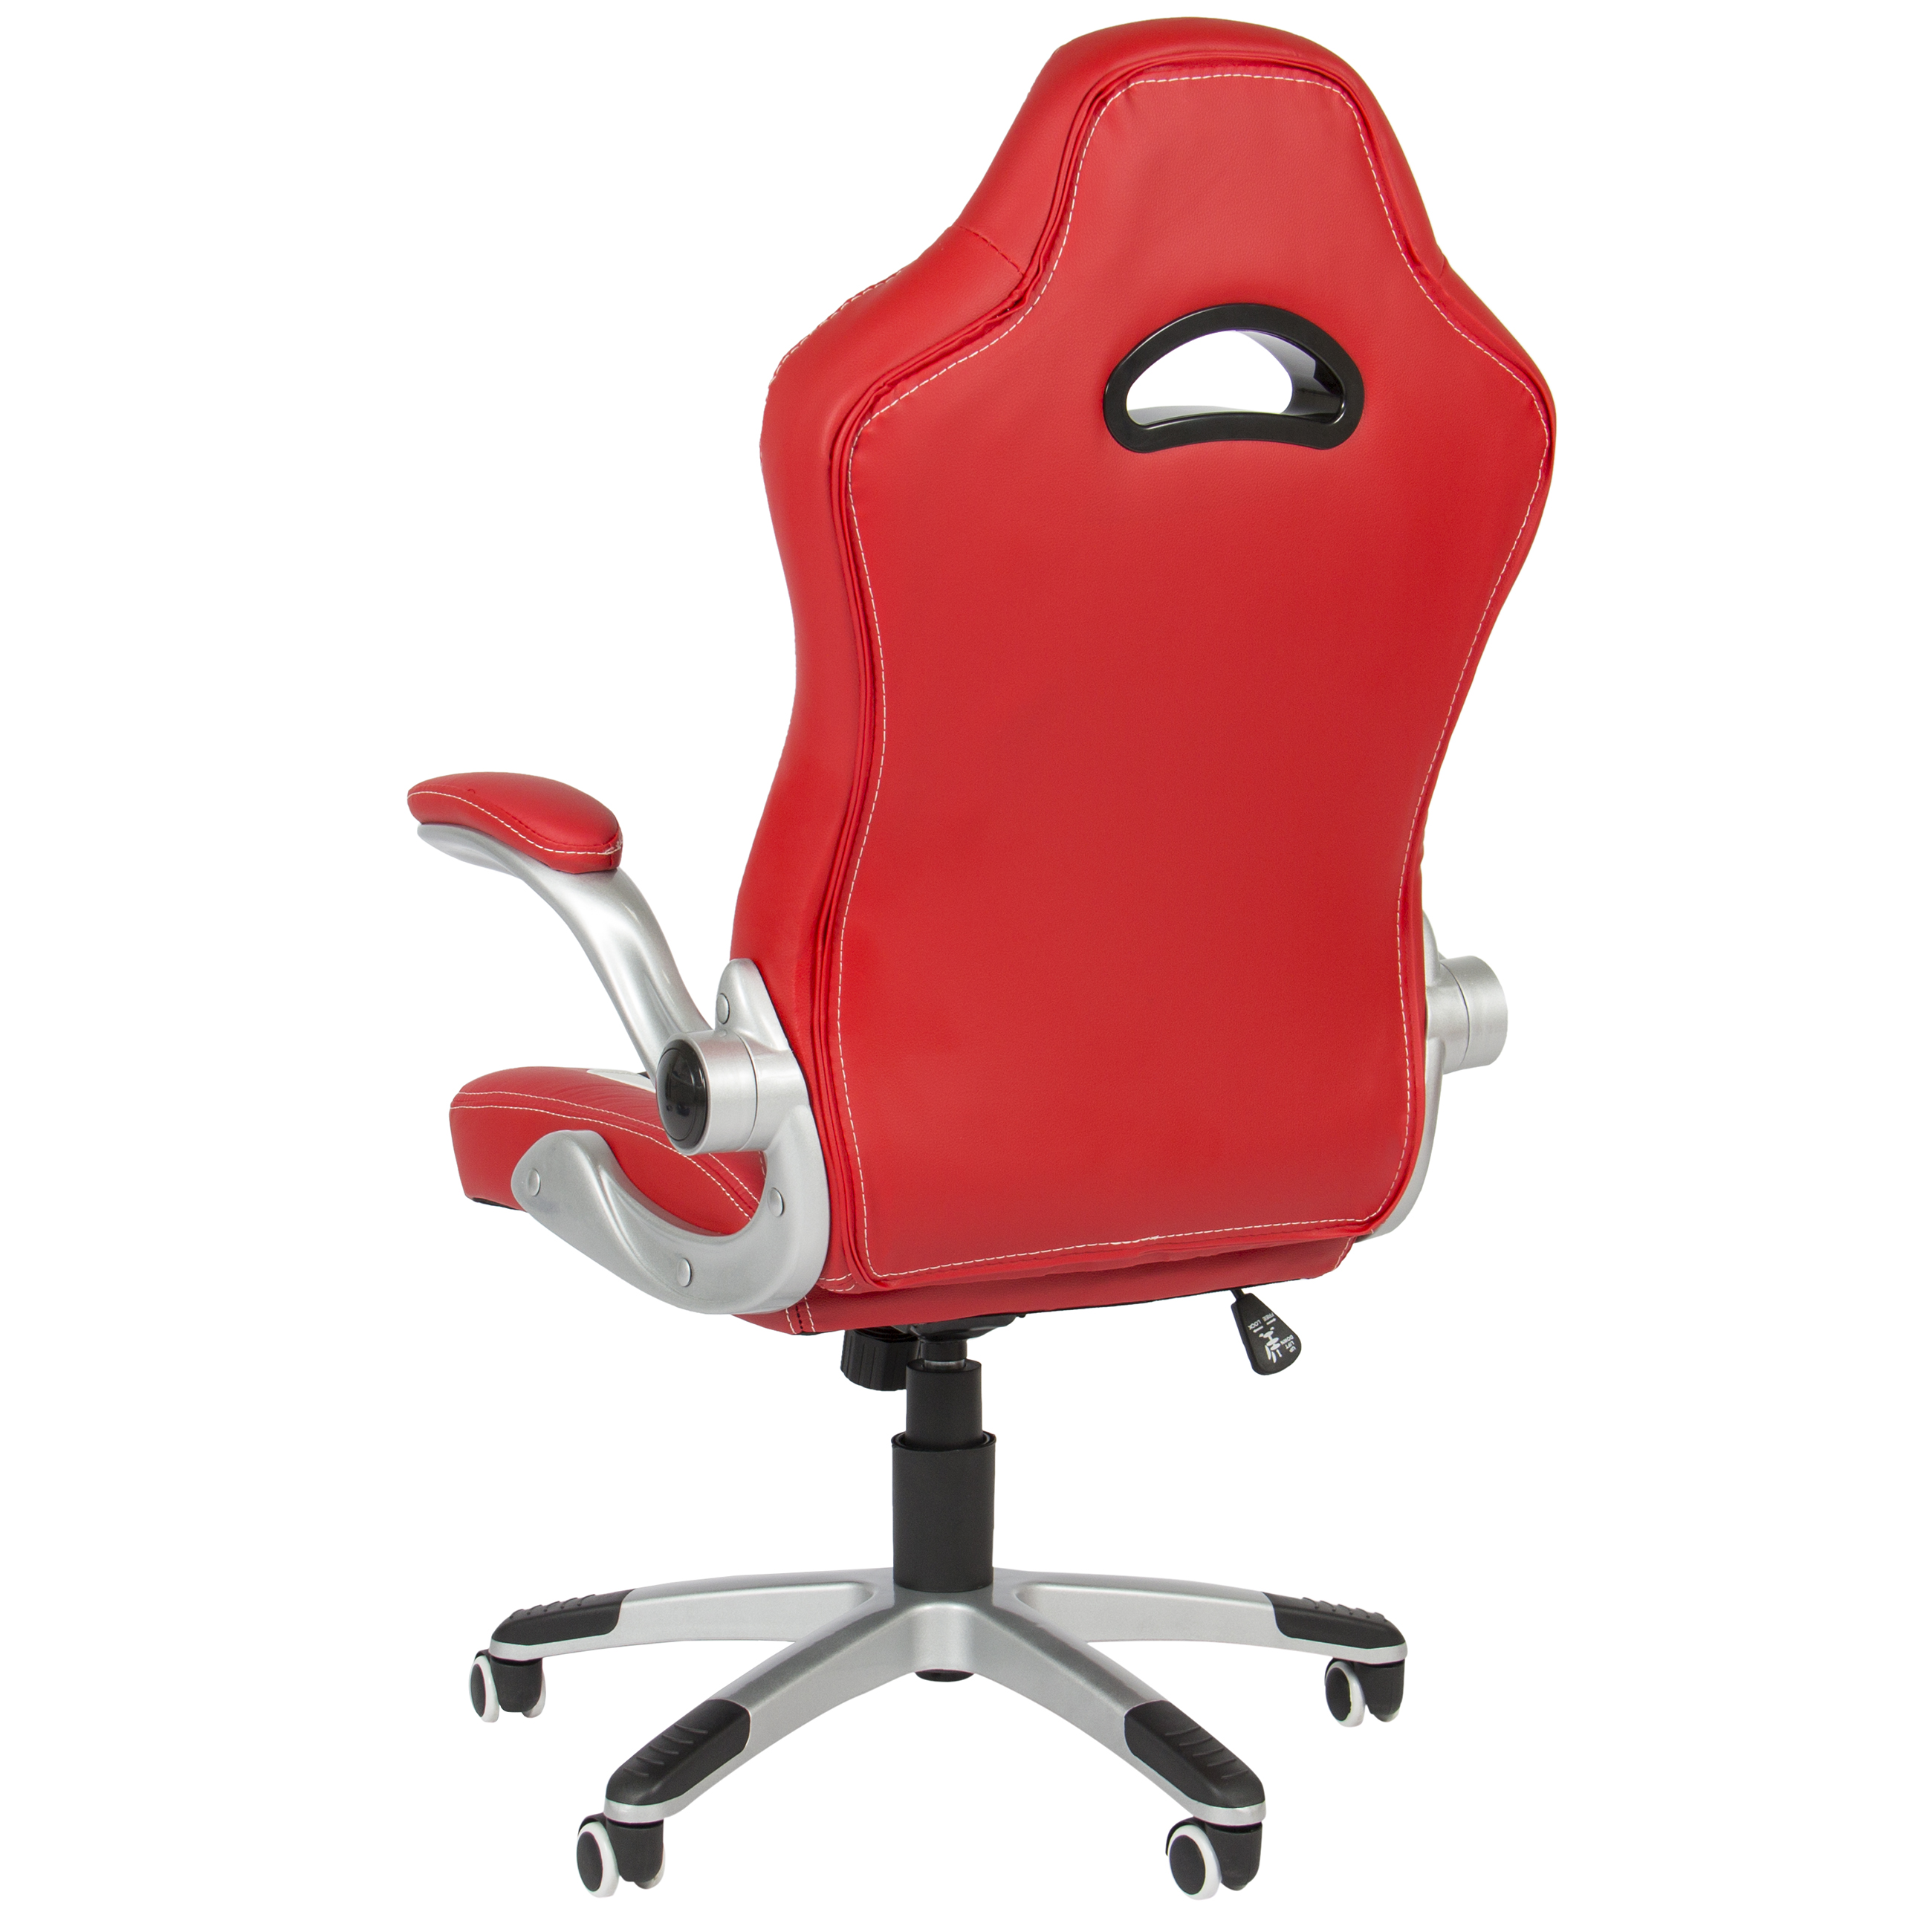 Executive fice Chair PU Leather Racing Style Bucket Desk Seat